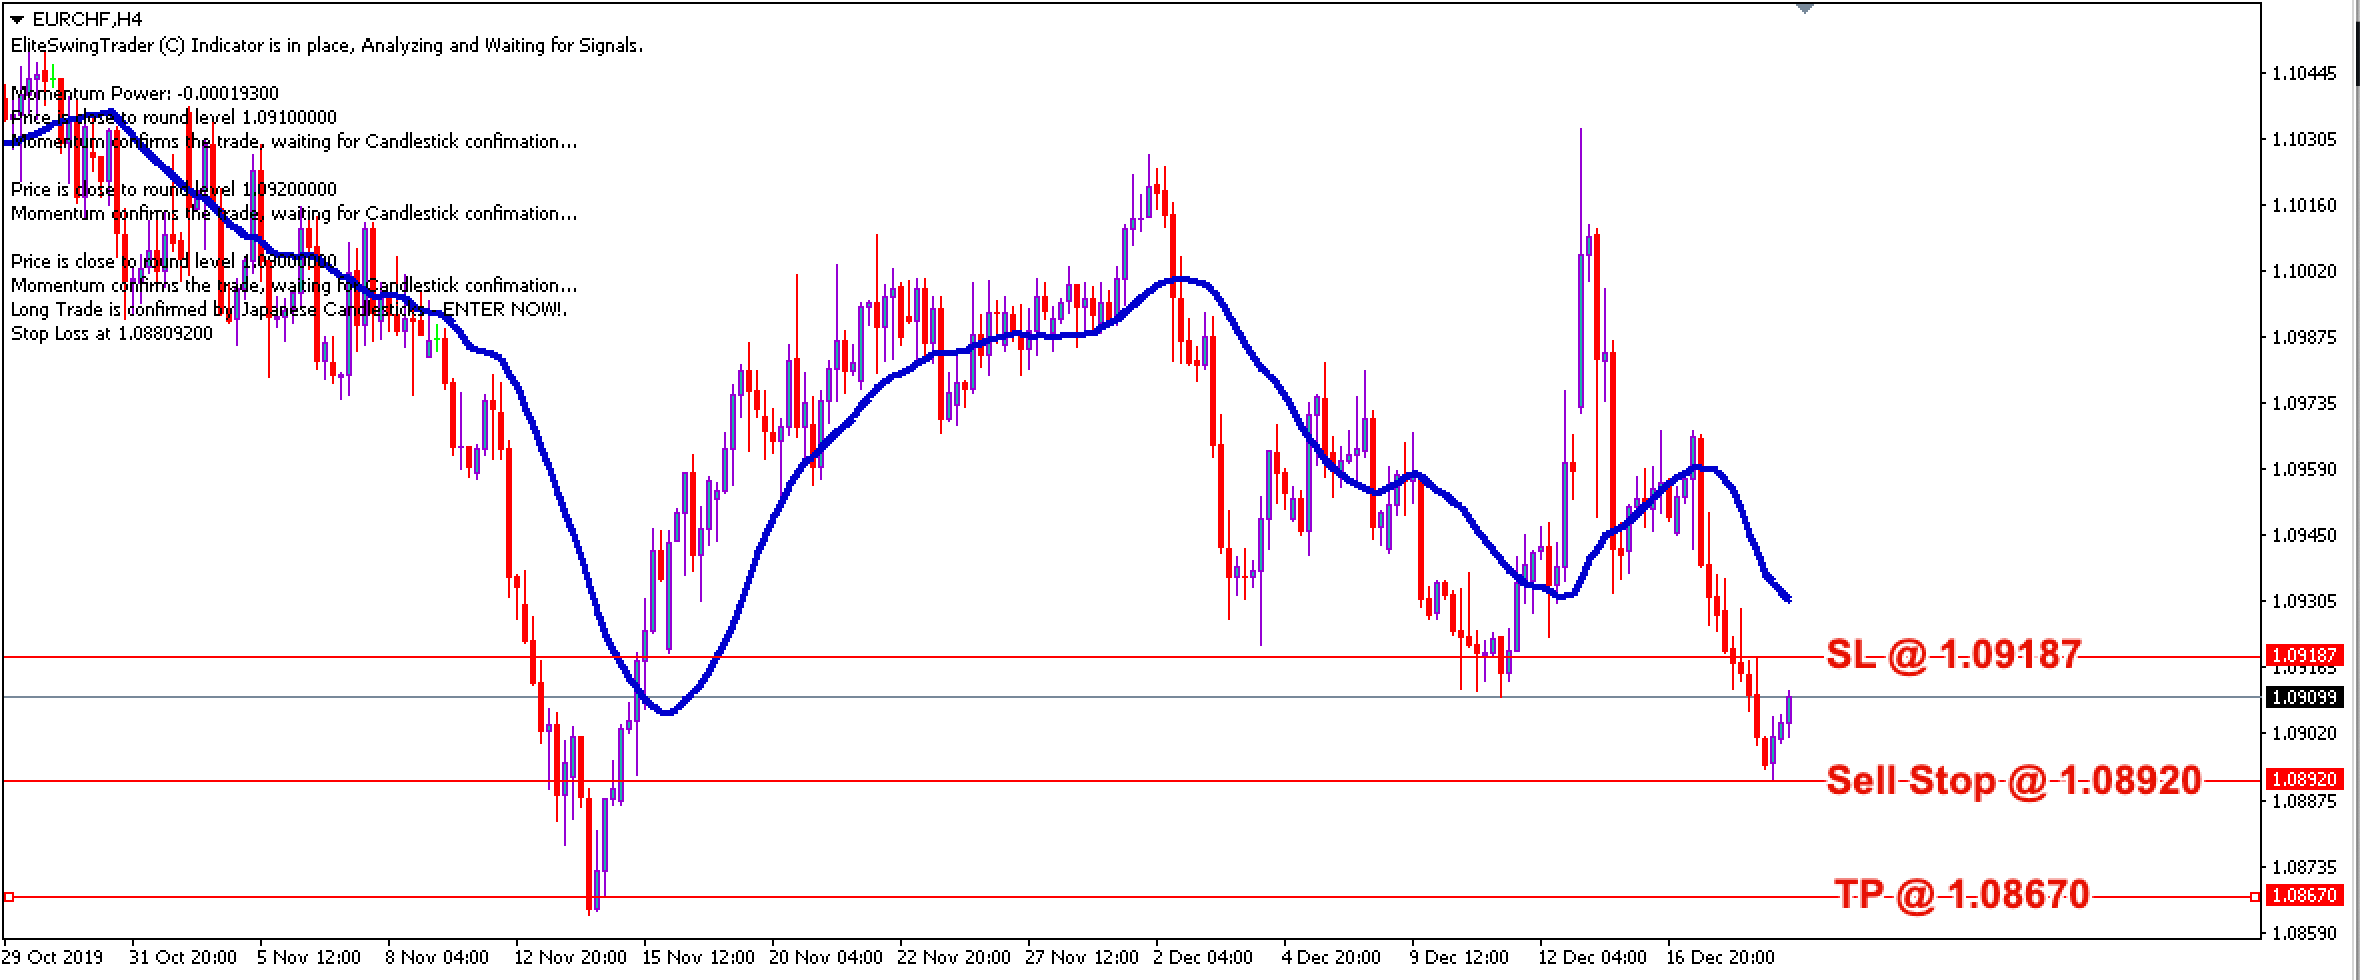 EUR/CHF Daily Price Forecast – 19th Dec 2019